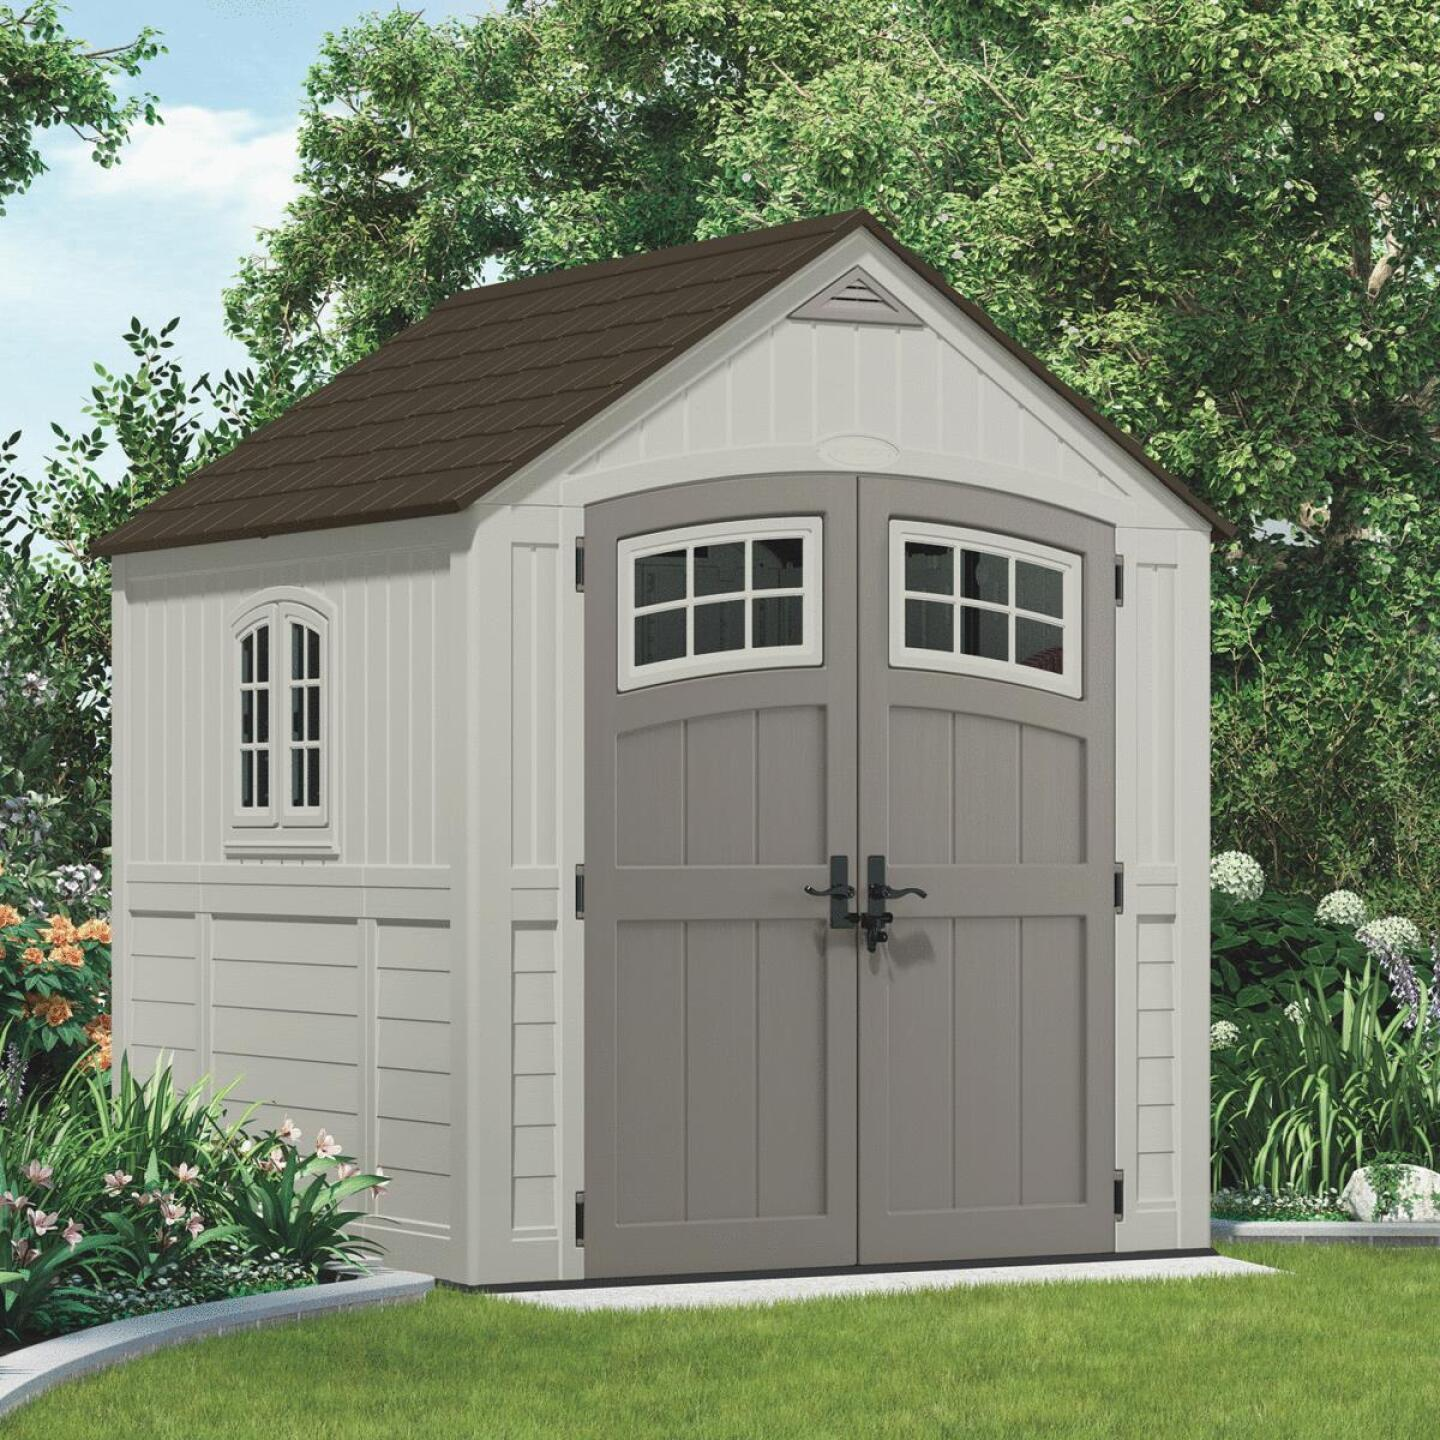 Suncast Cascade 322 Cu. Ft. Blow Molded Resin Storage Shed Image 1